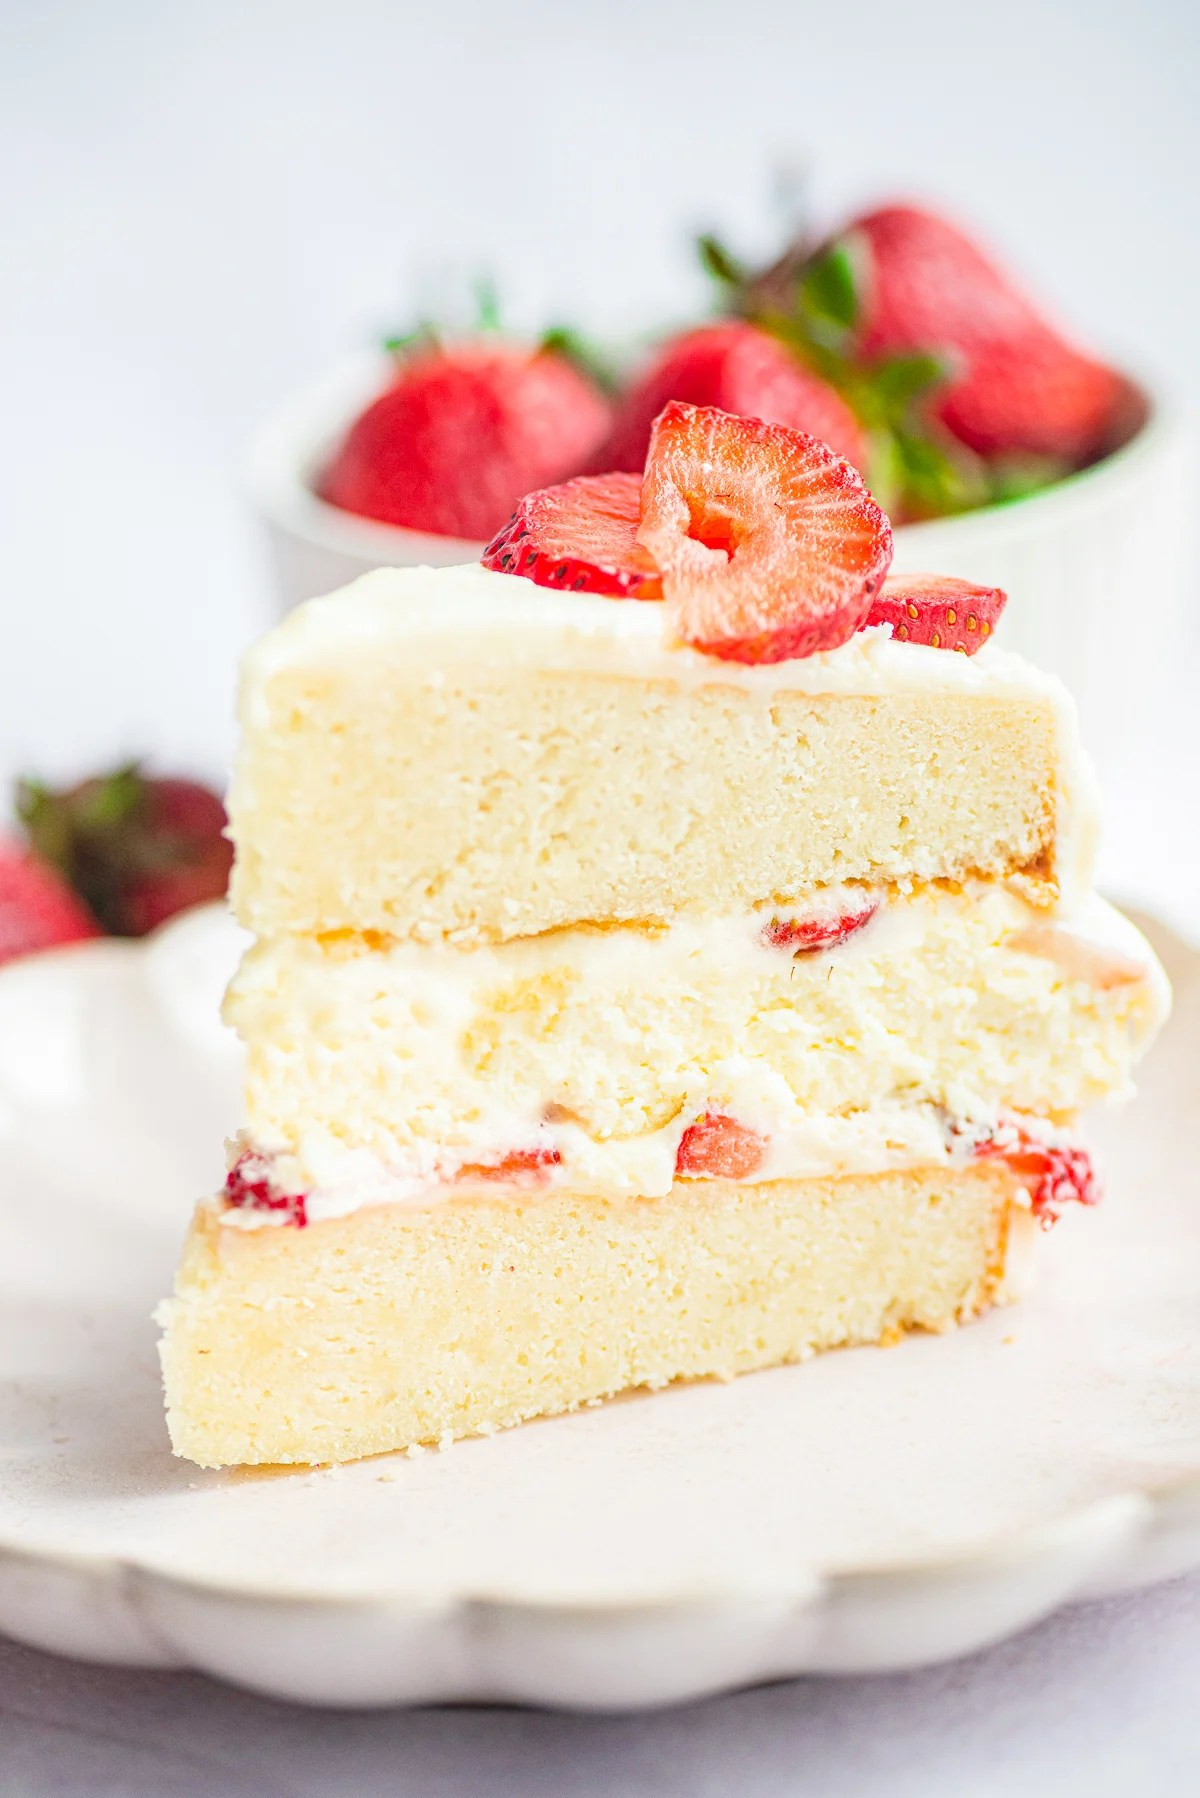 Slice of cake on white plate showing each layers topped with strawberries